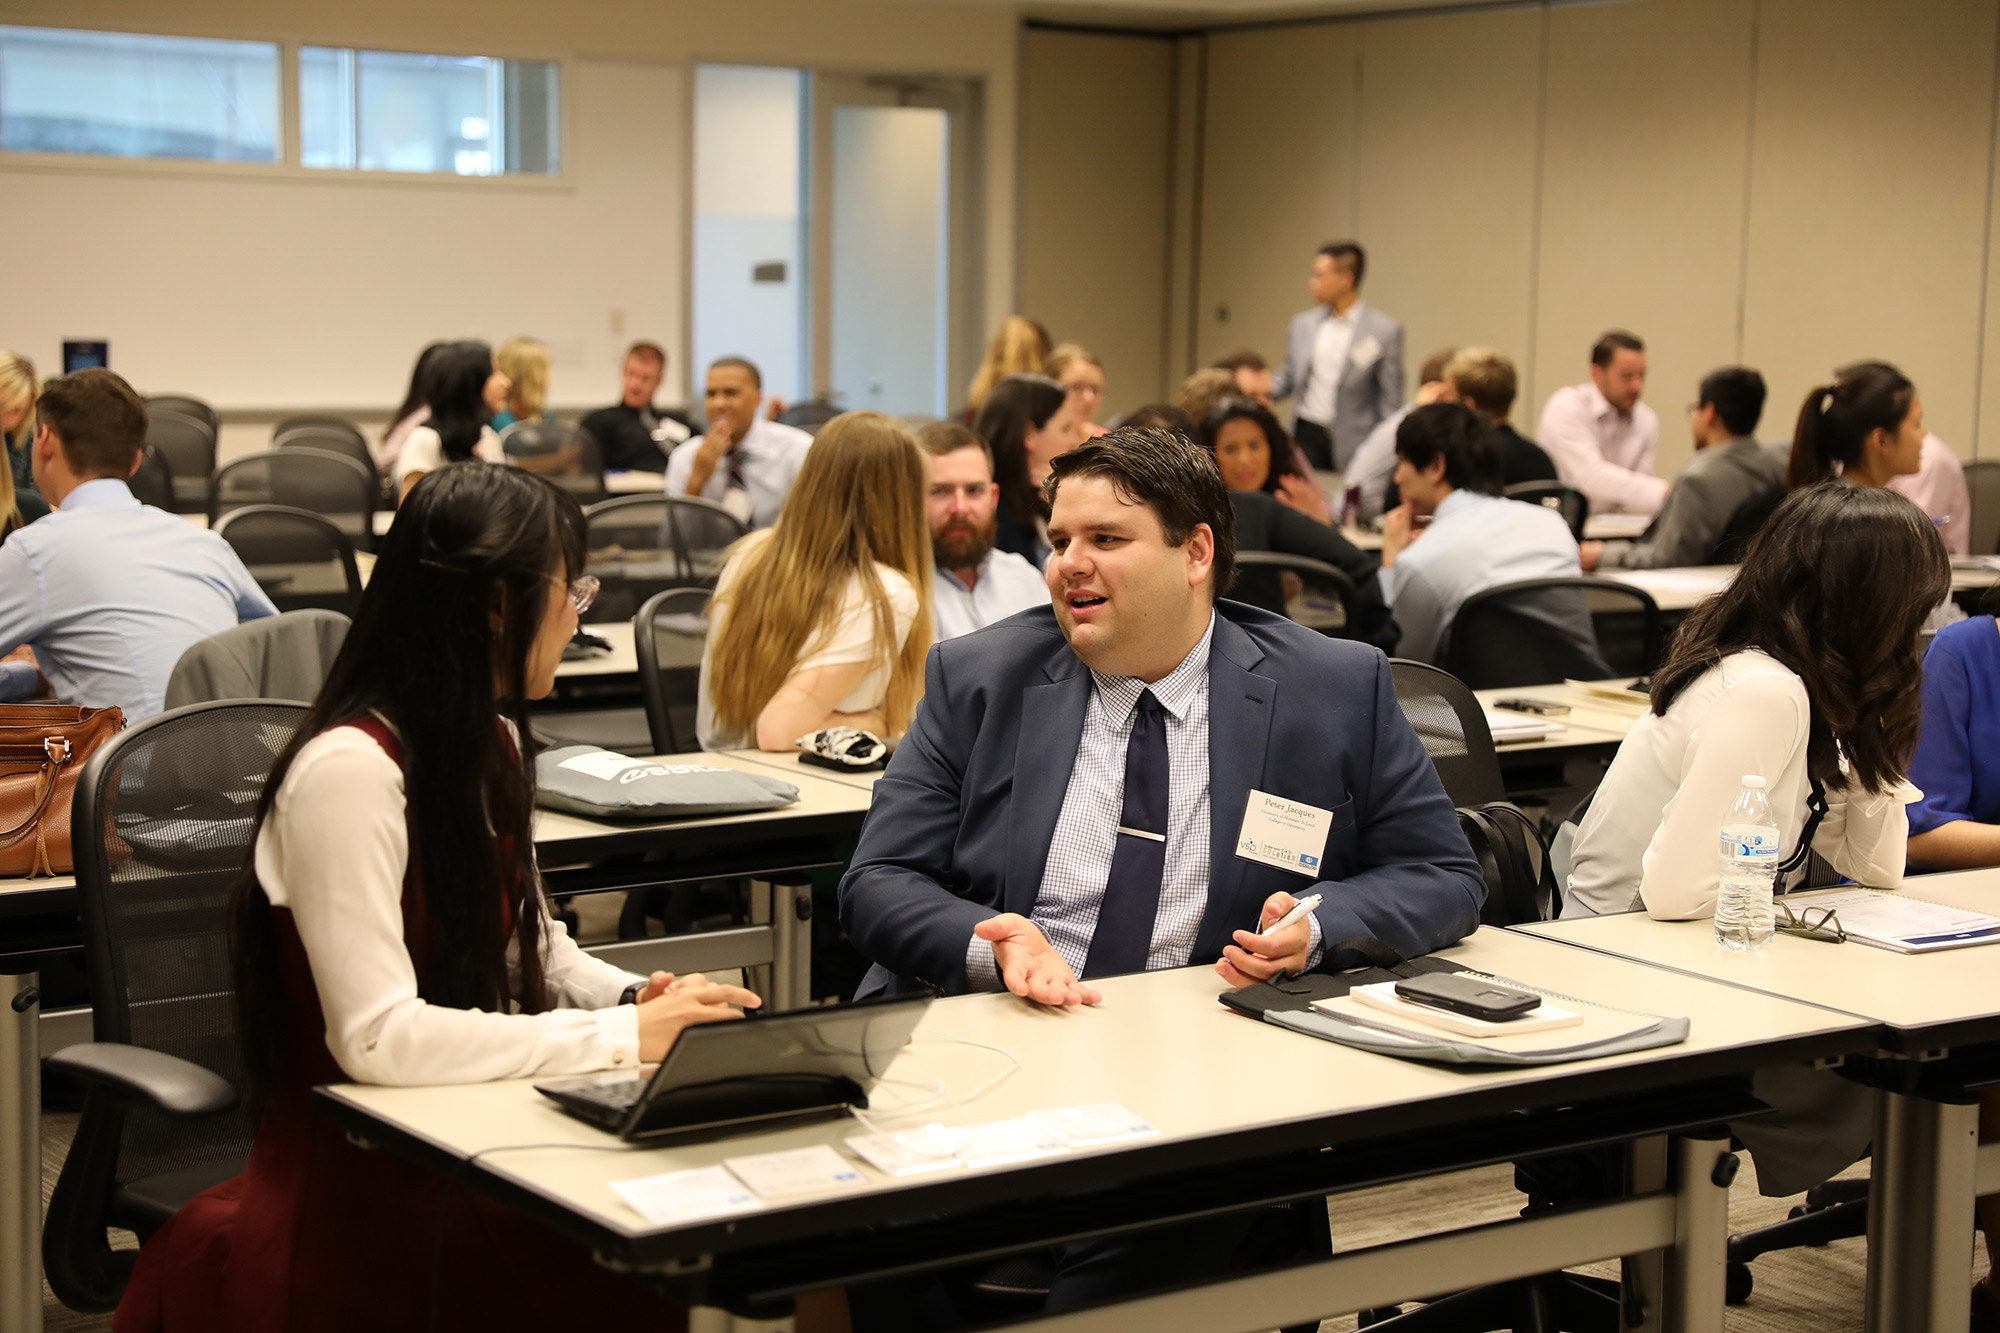 SOLutioN Conference Brings Optometry Student Leaders to Texas